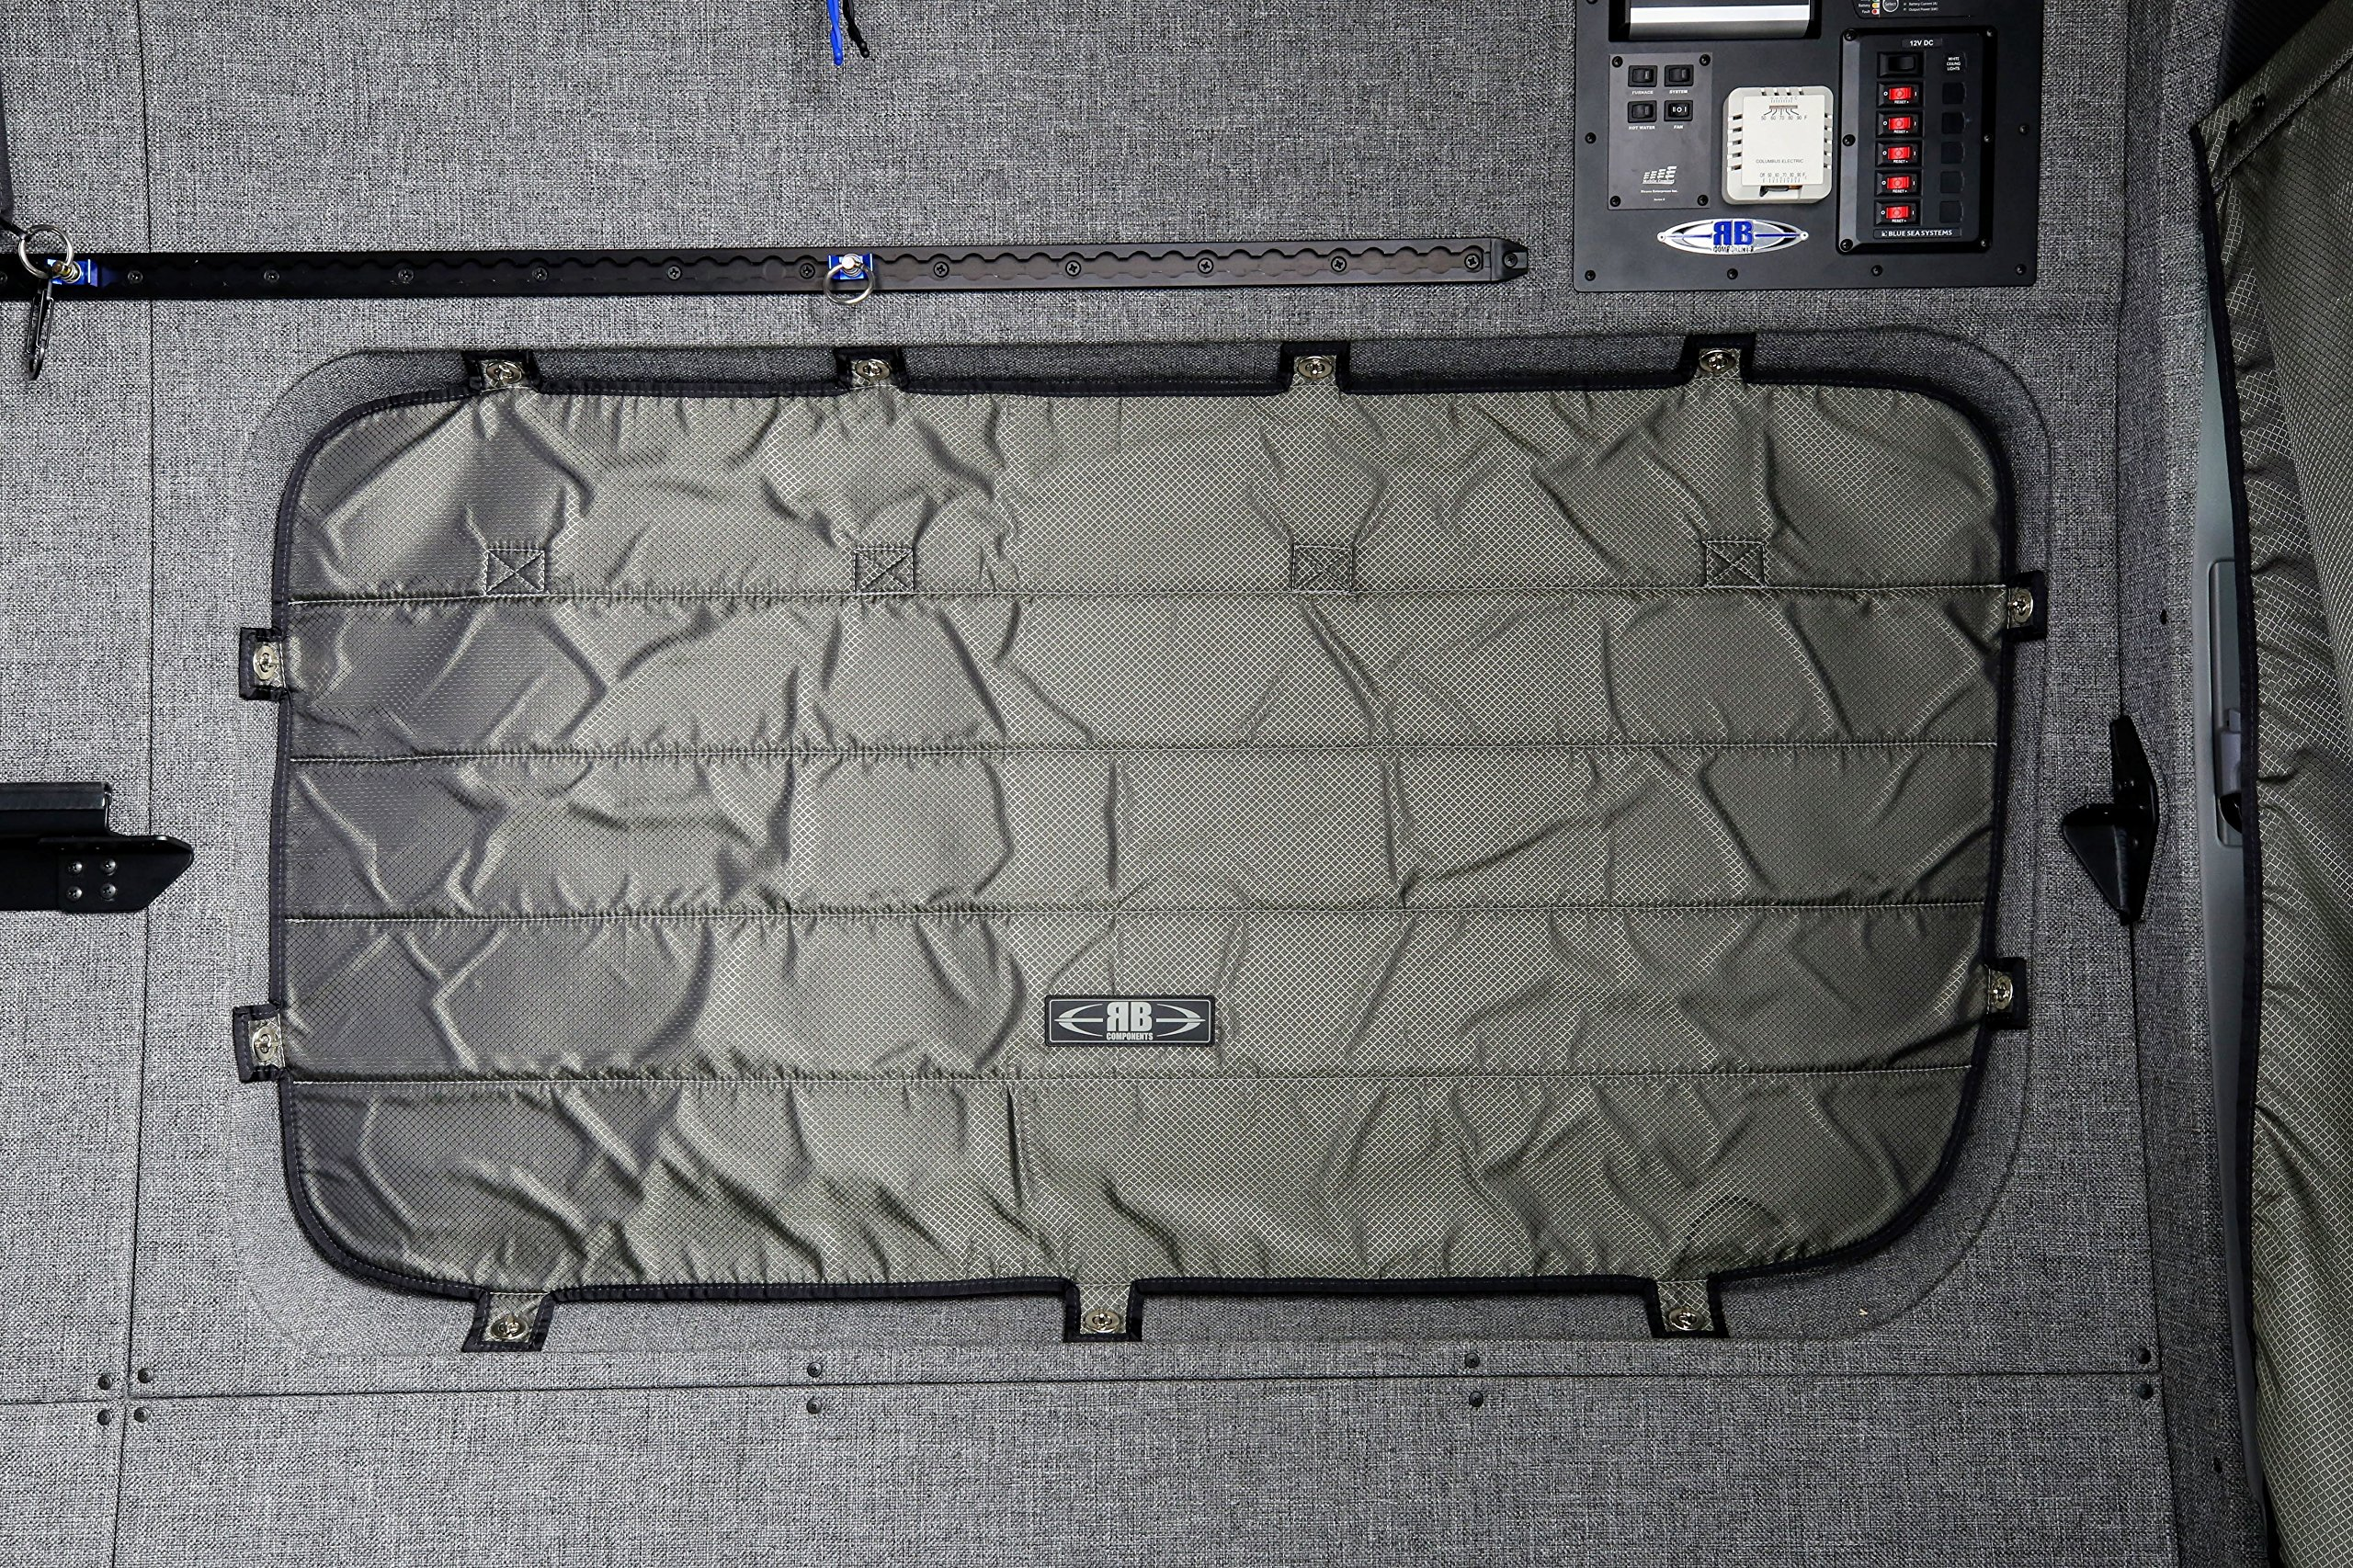 07+ Sprinter Van Driver's Side Galley Window Sun Shade/Privacy Cover, Inset by RB Components (Image #1)